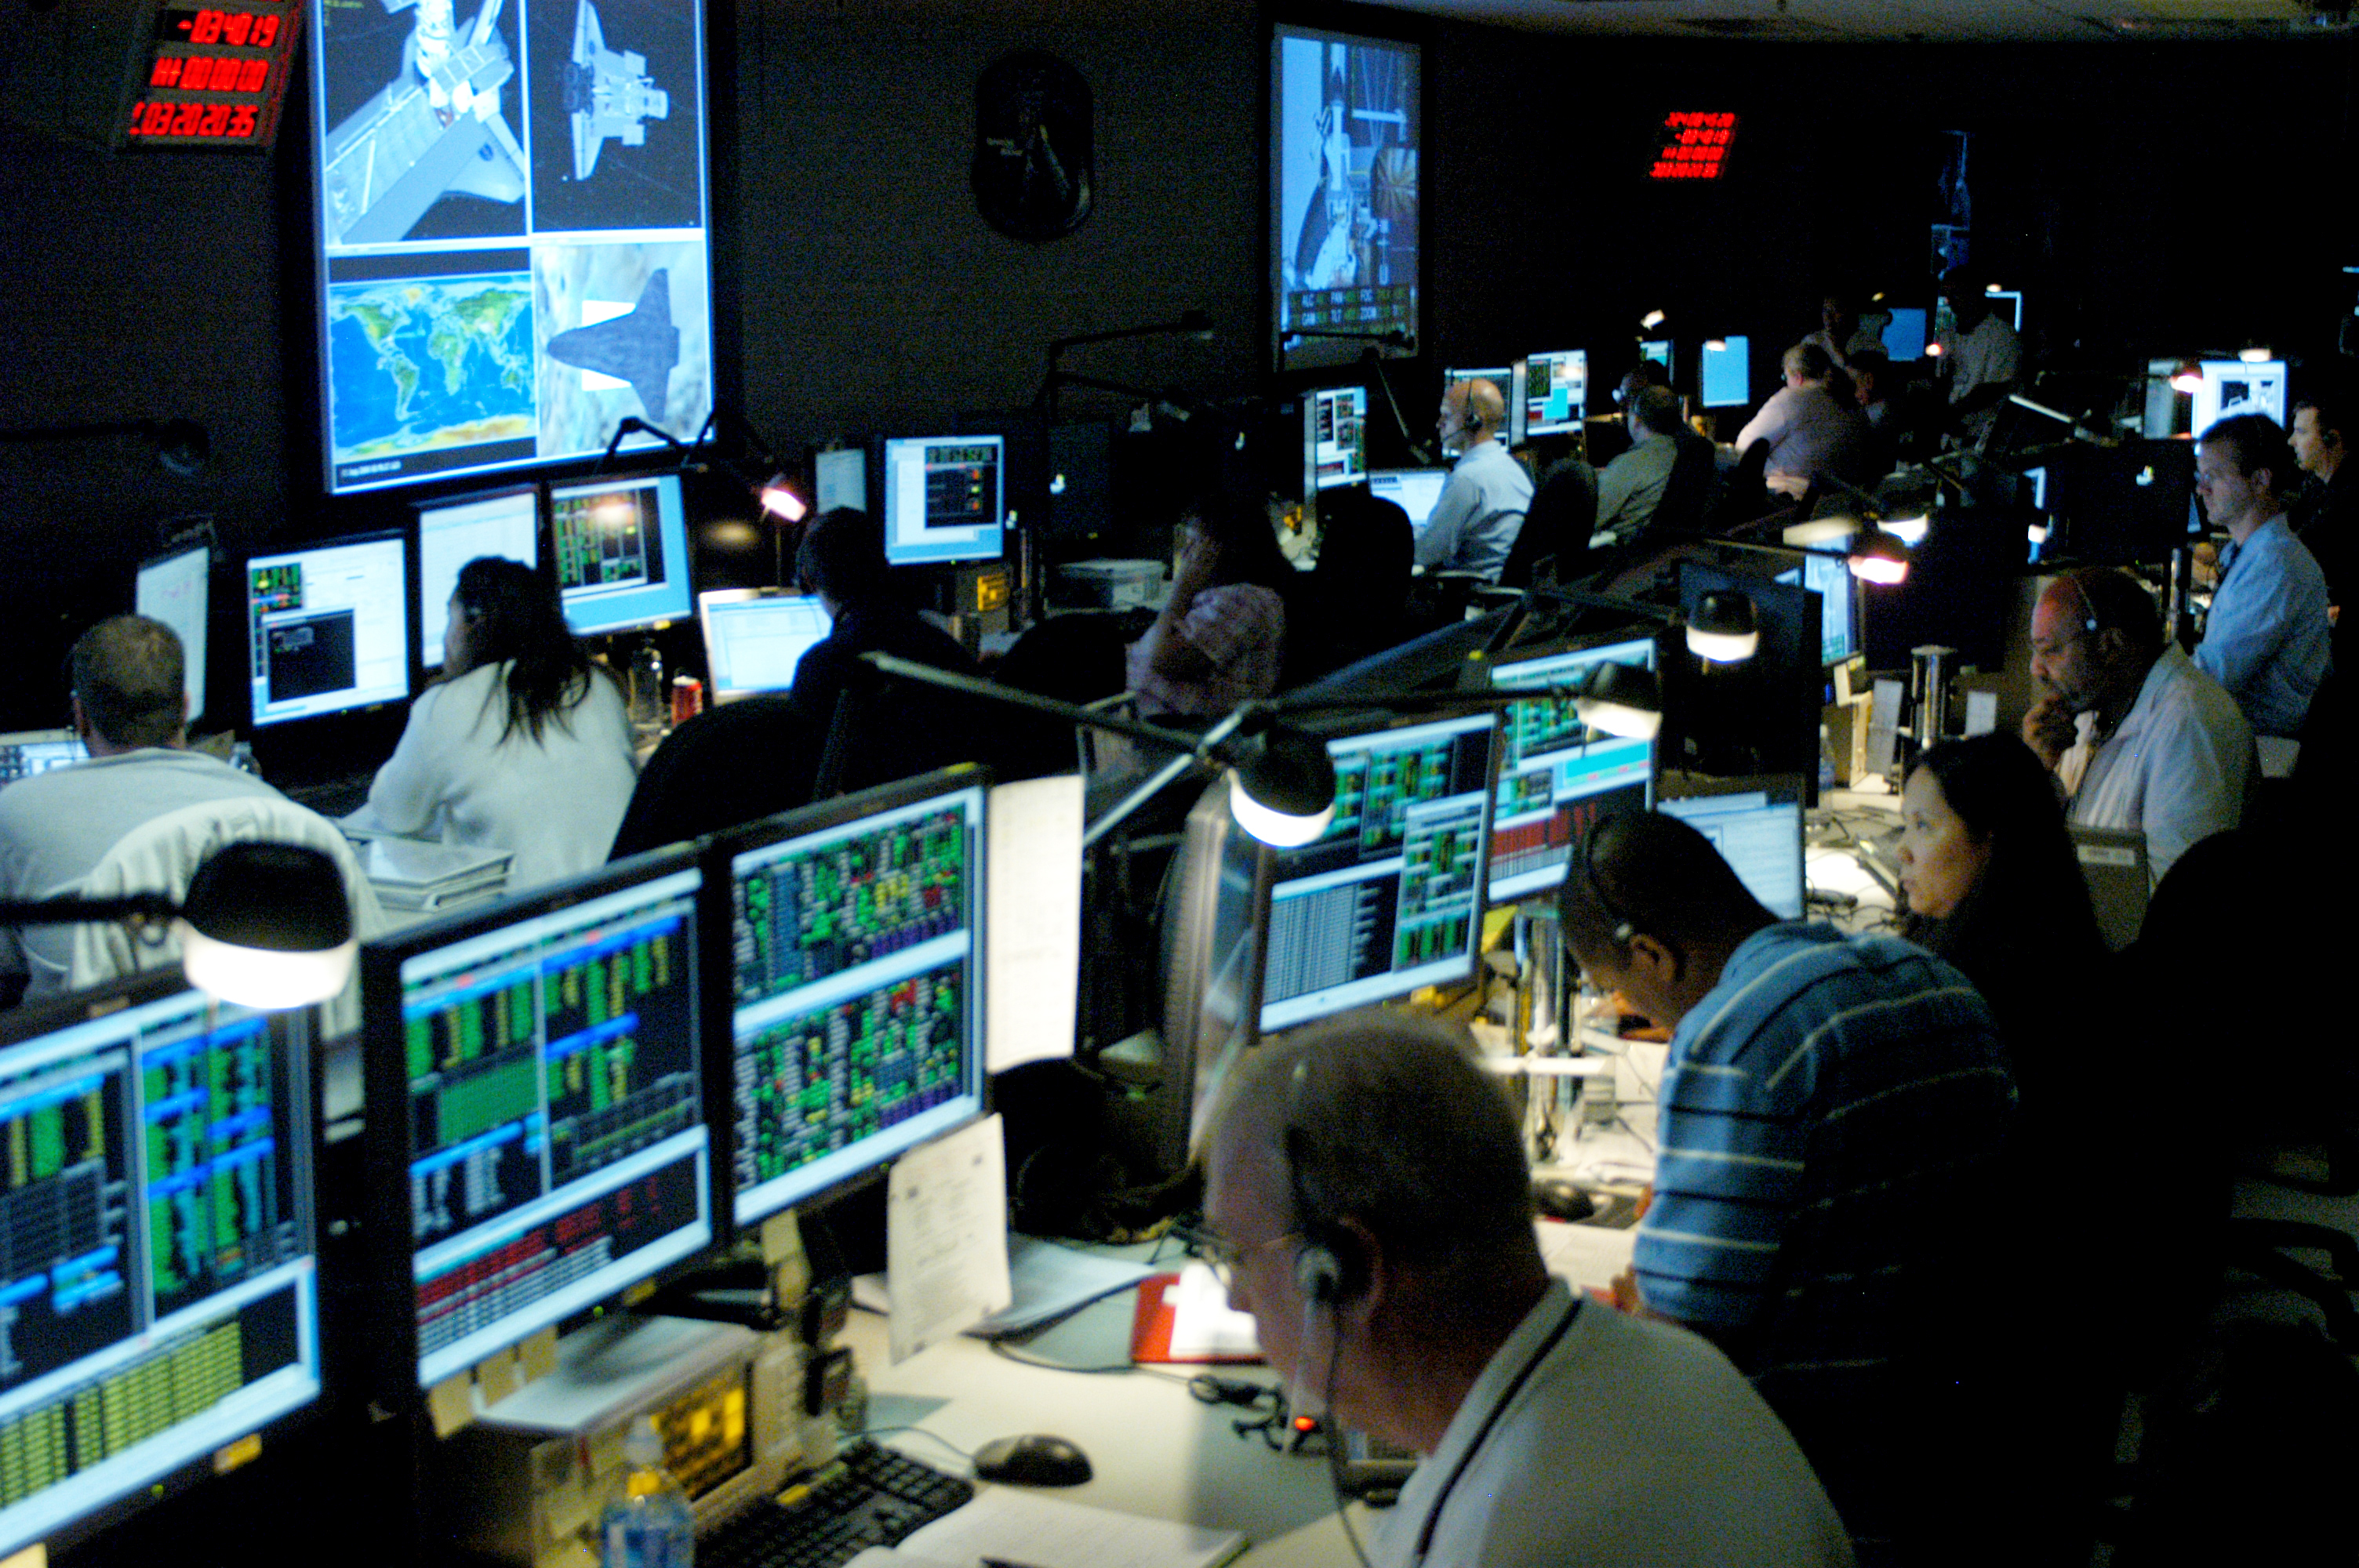 NASA - The Space Telescope Operations Control Center (STOCC) at GSFC